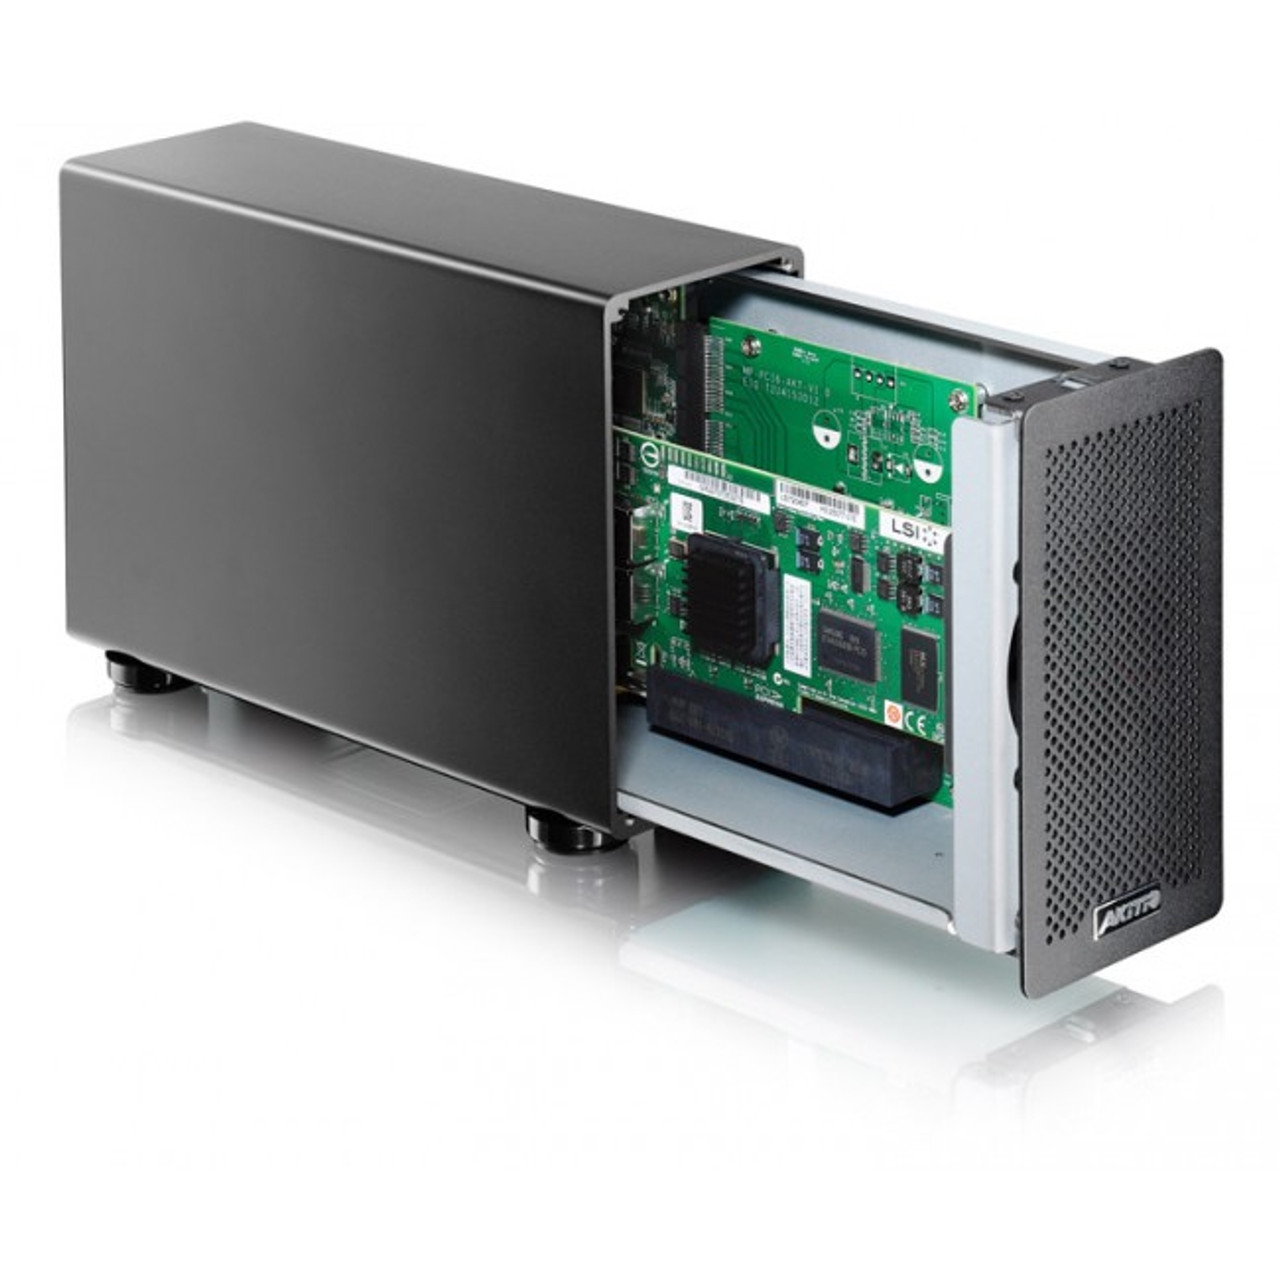 Akitio Thunderbolt 2 PCIe Box Expansion Chassis